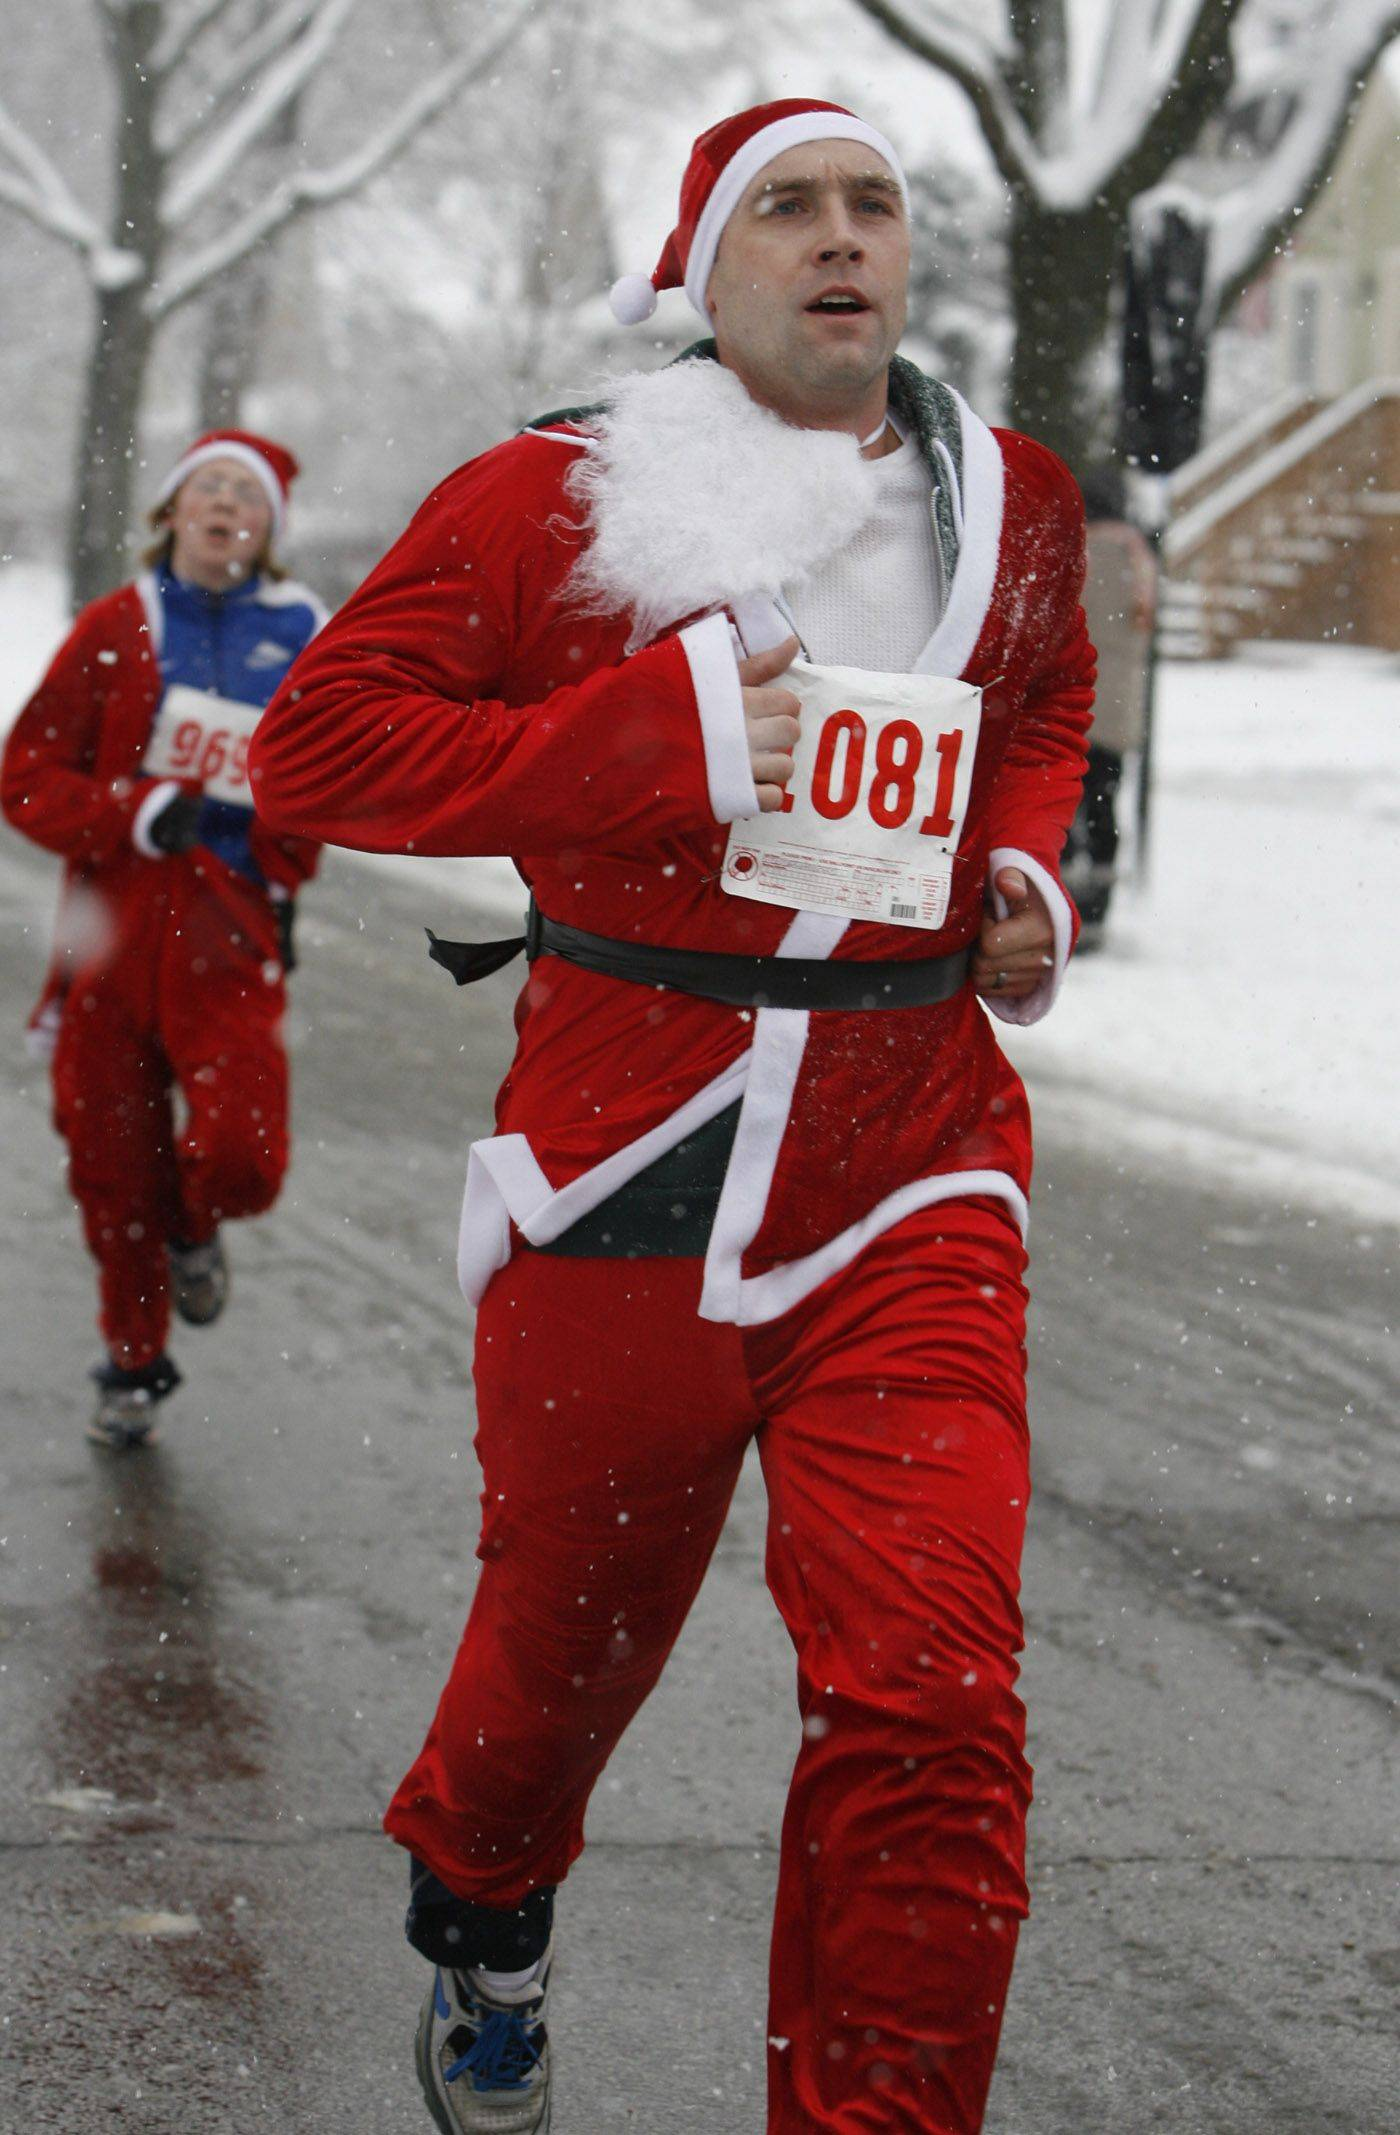 Arlington Heights Rotary's 5K Santa run